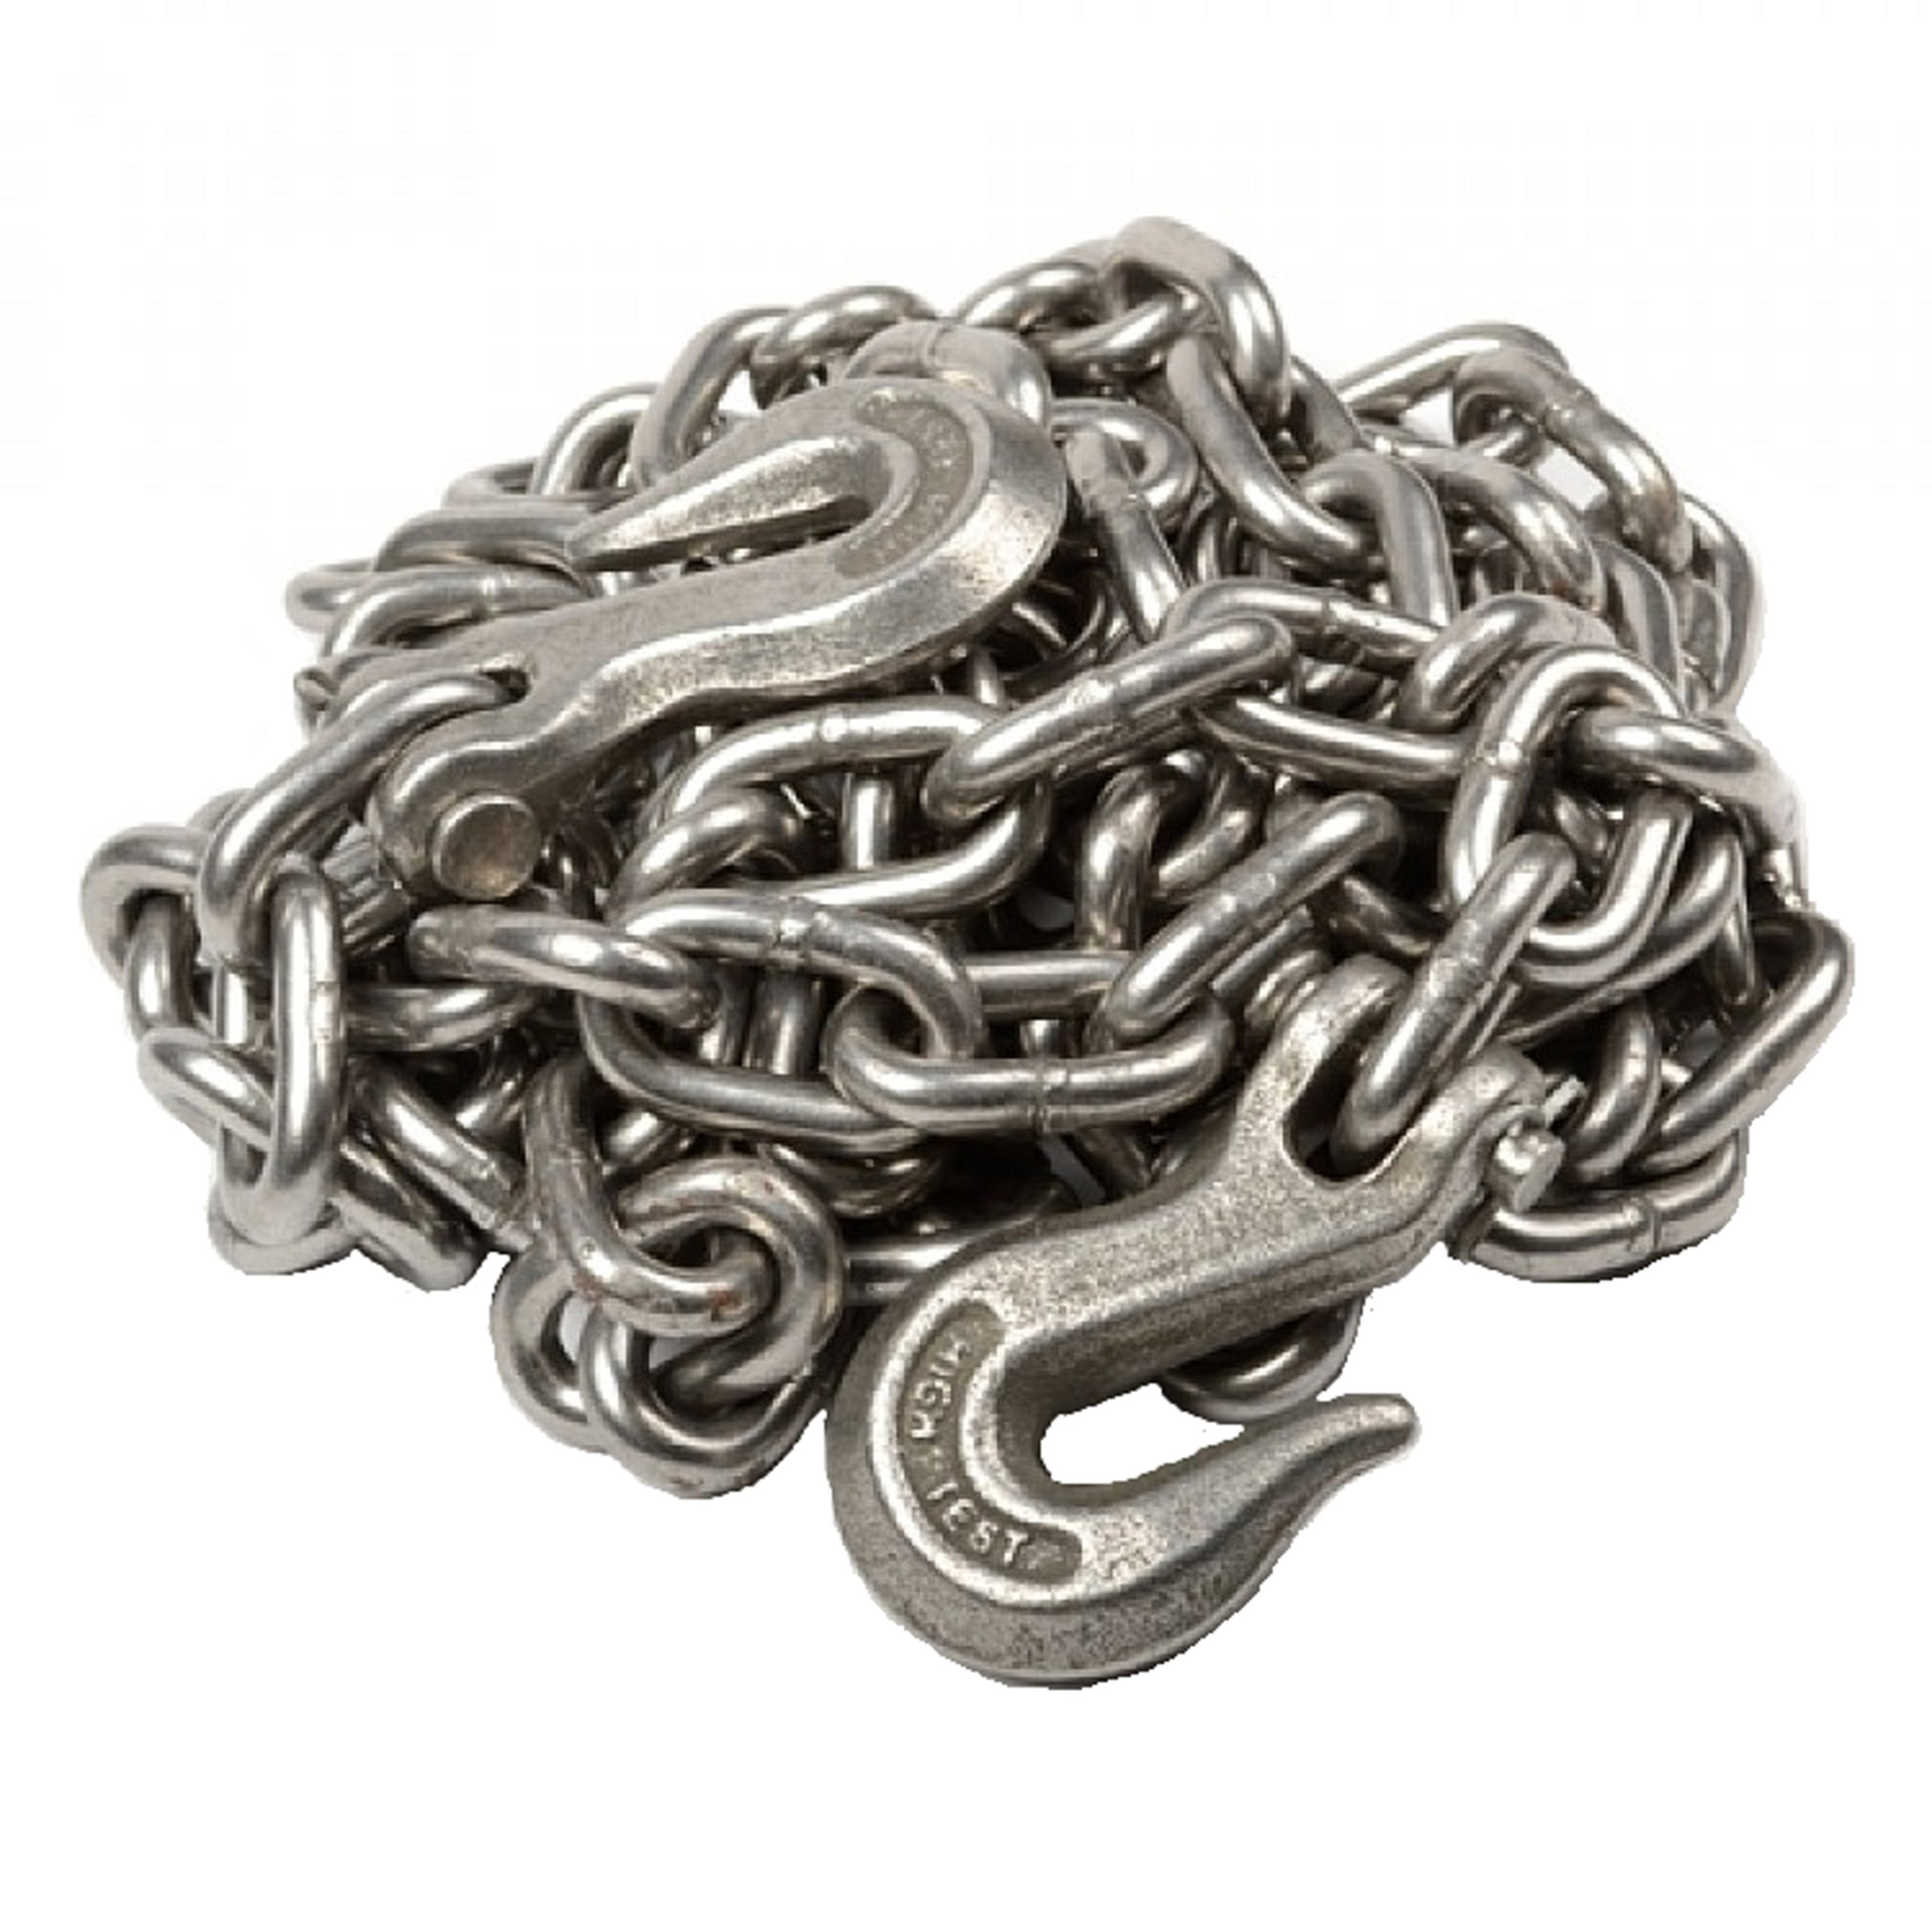 WennoW 3/8'' X 25' Heavy Duty Tow Chain Automotive Truck Towing 25ft Log Chain by WennoW